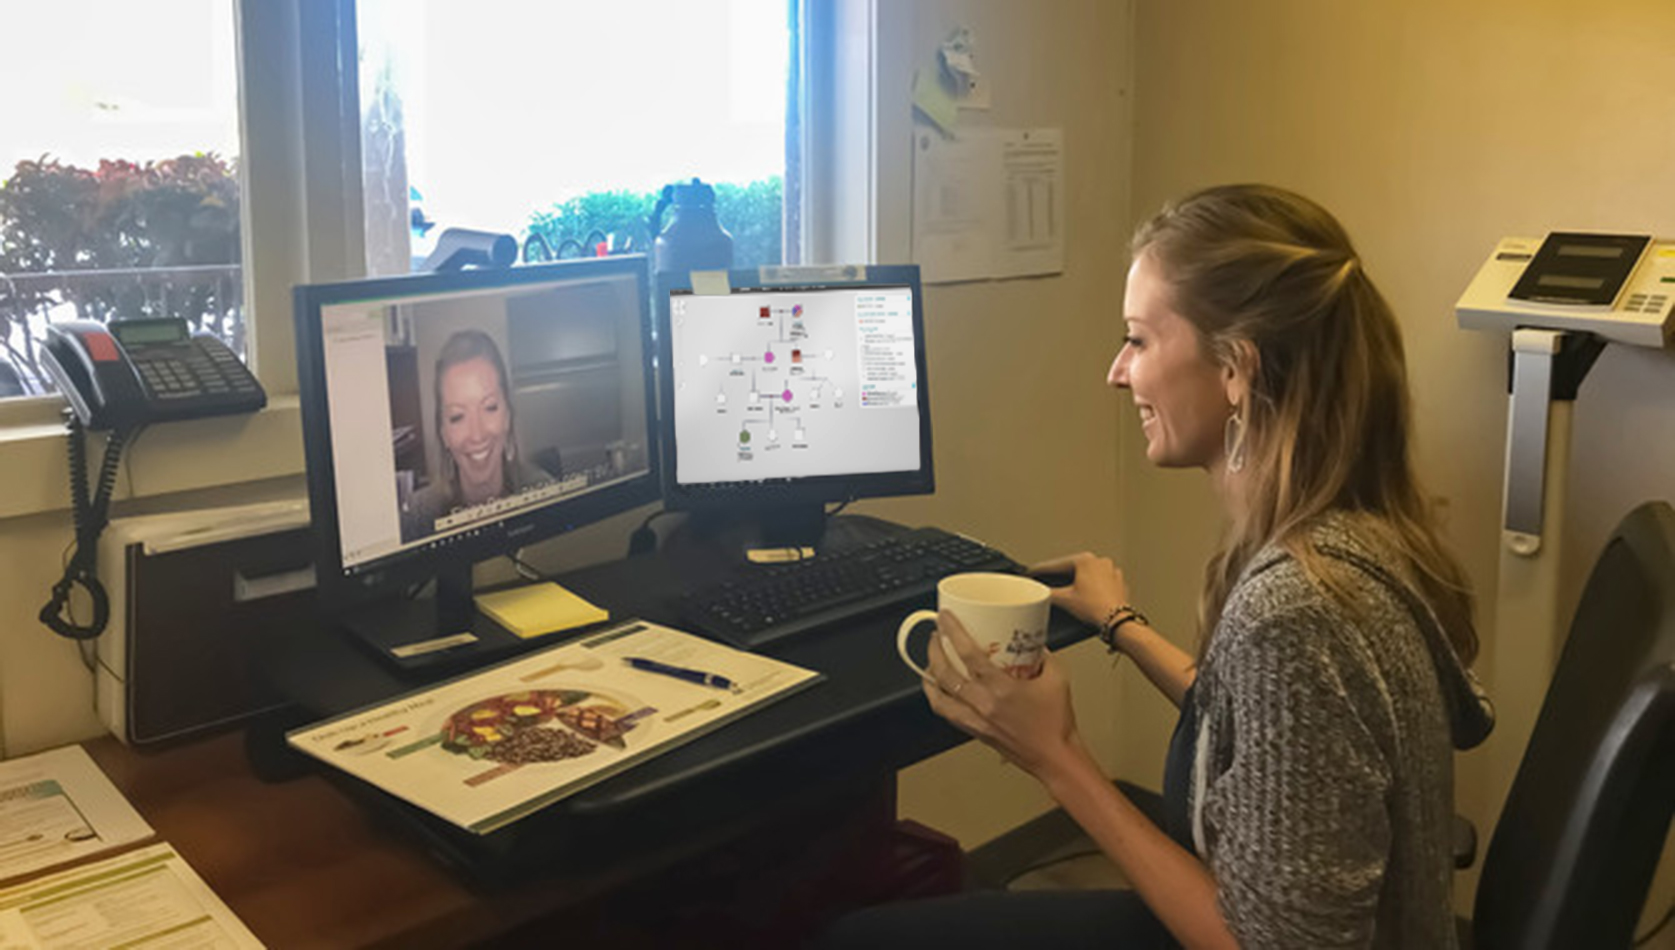 A woman sits at her home office desk holding a cup of tea. She smiles and holds a mouse while looking at one of two monitors on her desk. One monitor shows she's on a video call, the other has an open PhenoTips pedigree.